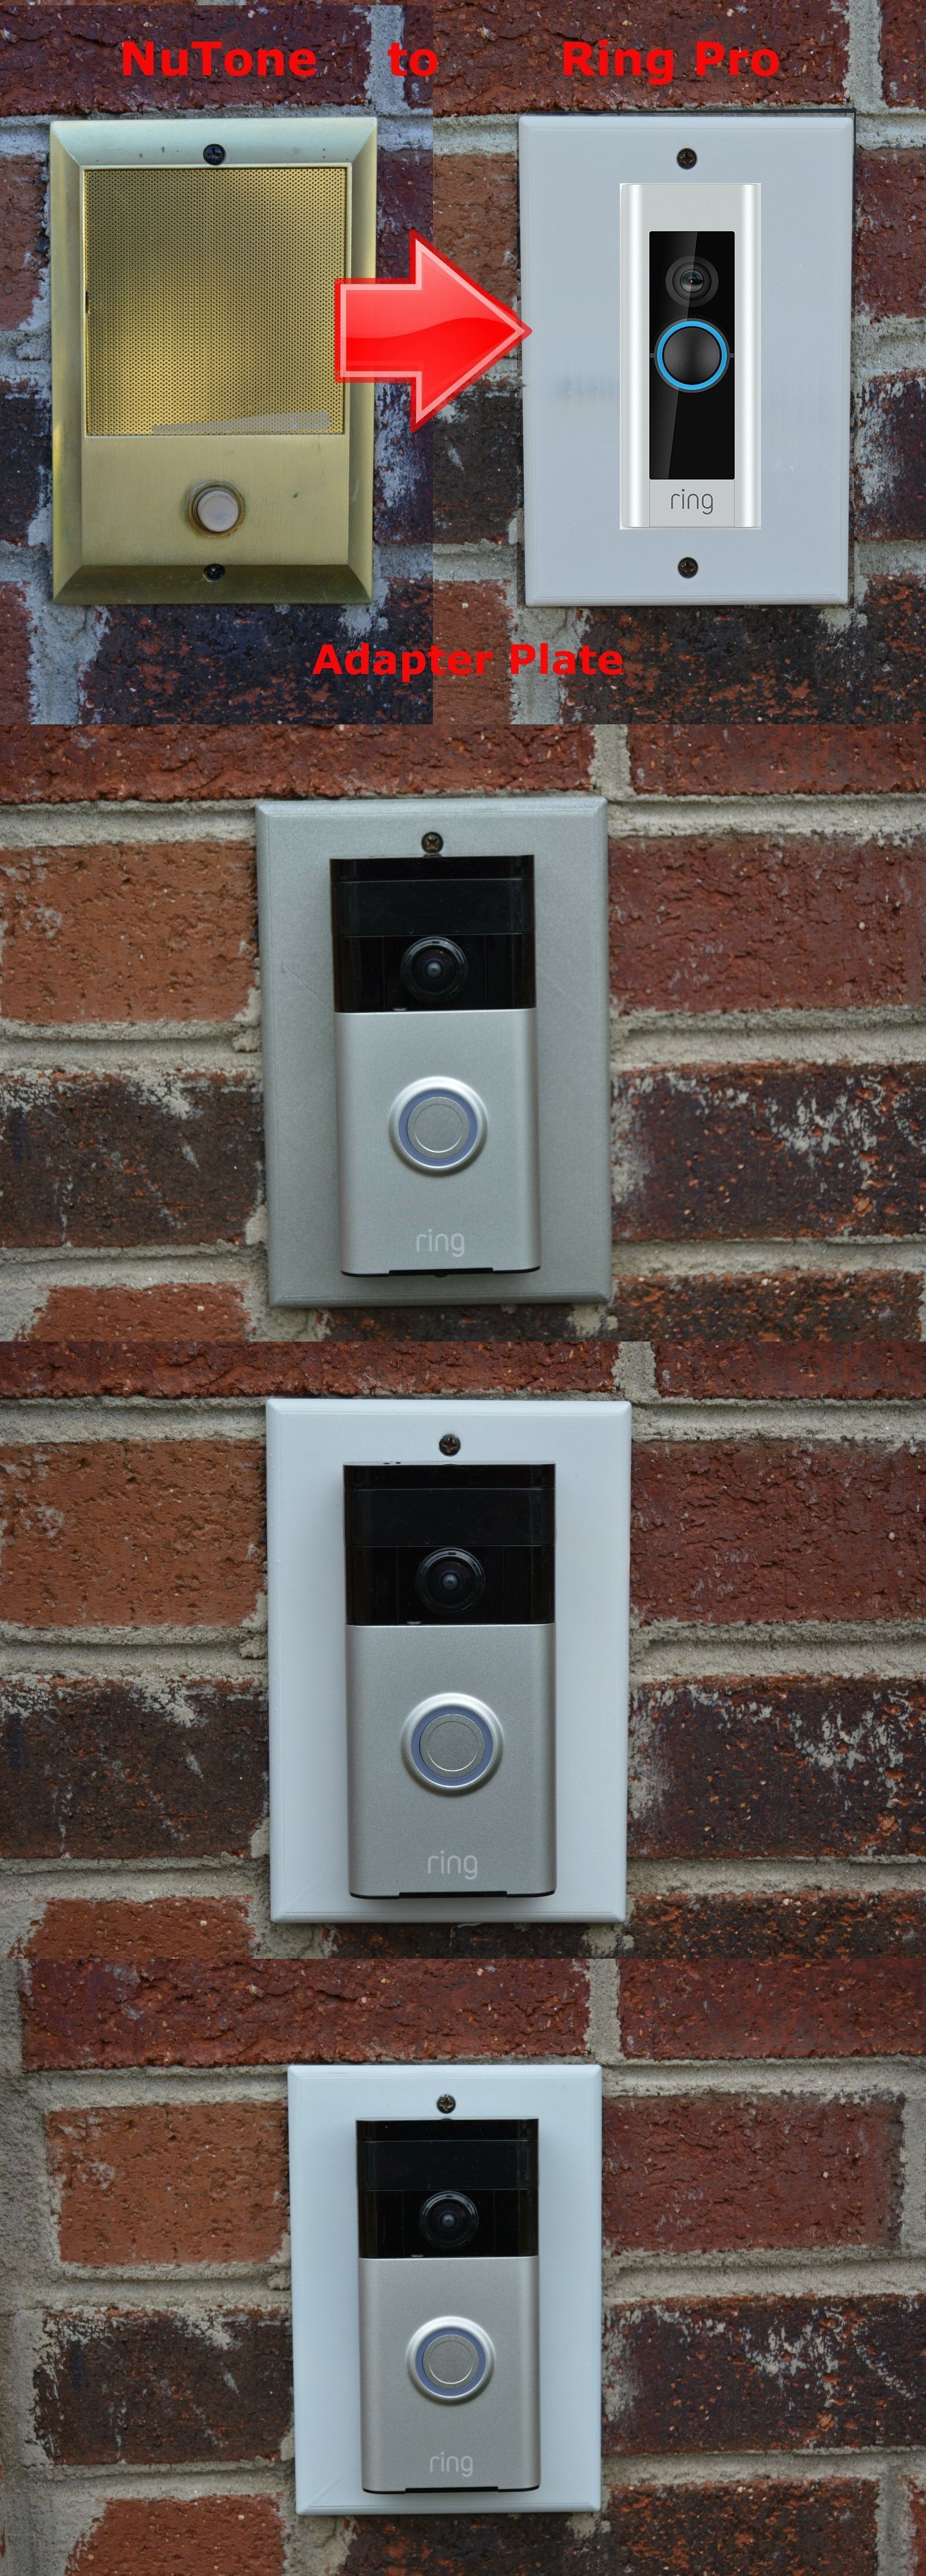 Doorbells 115975 Ring Pro Doorbell Adapter Plate Nutone And Mands Intercom Systems Buy It Now Only 27 84 On Ebay Doorbe Ring Doorbell Doorbell Intercom